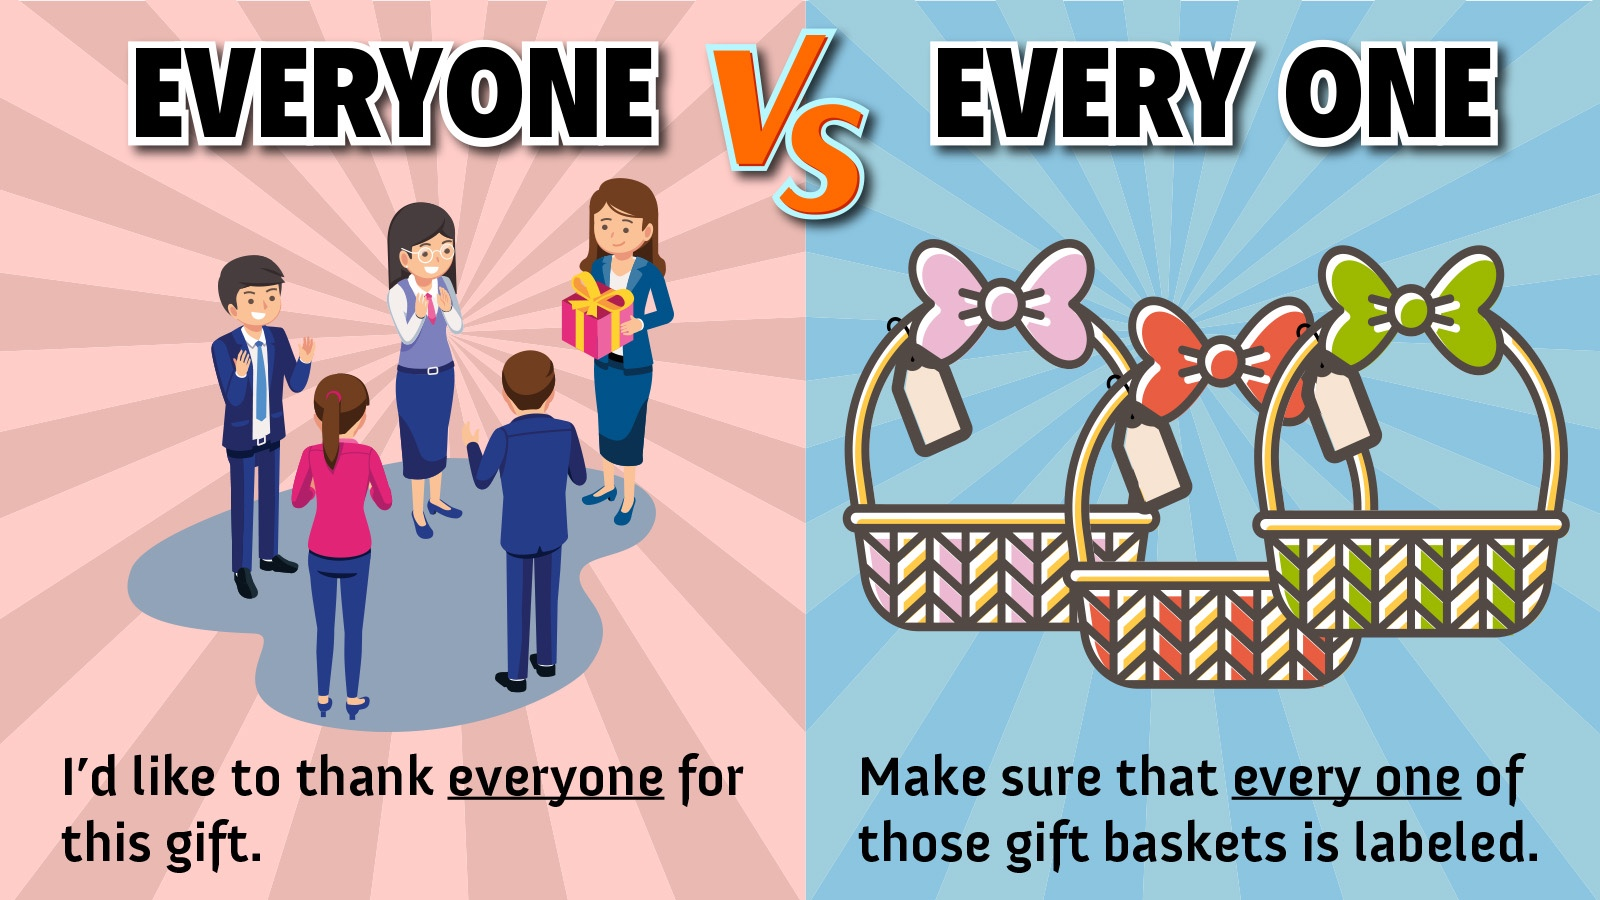 Everyone vs Every One Example